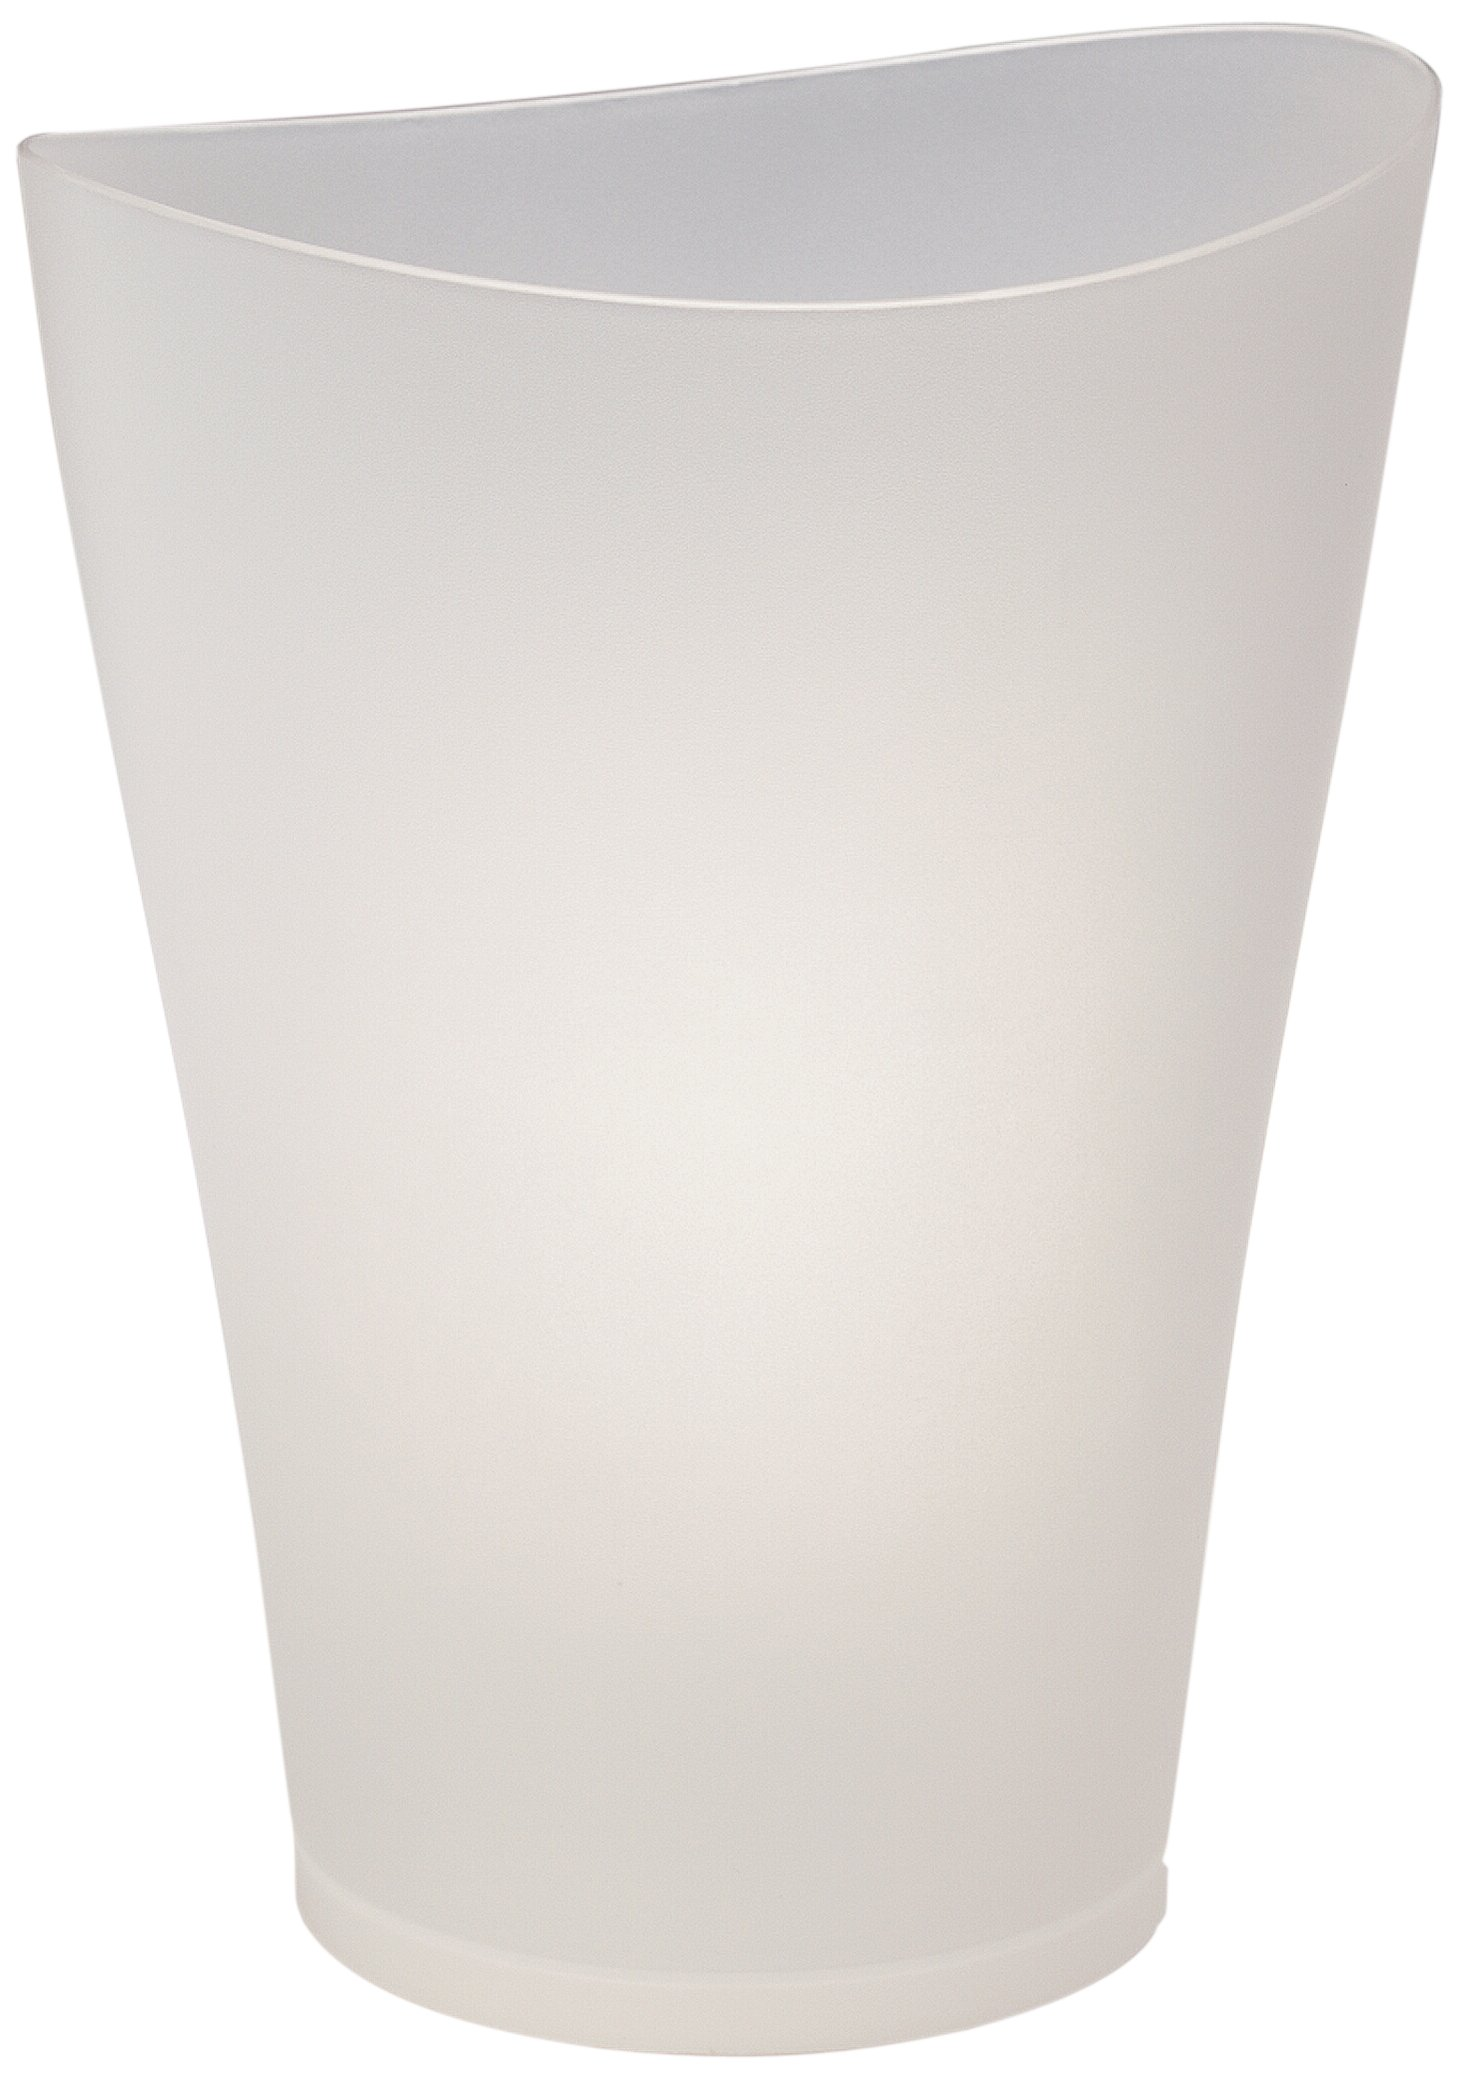 Rubbermaid FG290200CLR Spa Works Vanity Wastebasket, 9-Quart, Clear